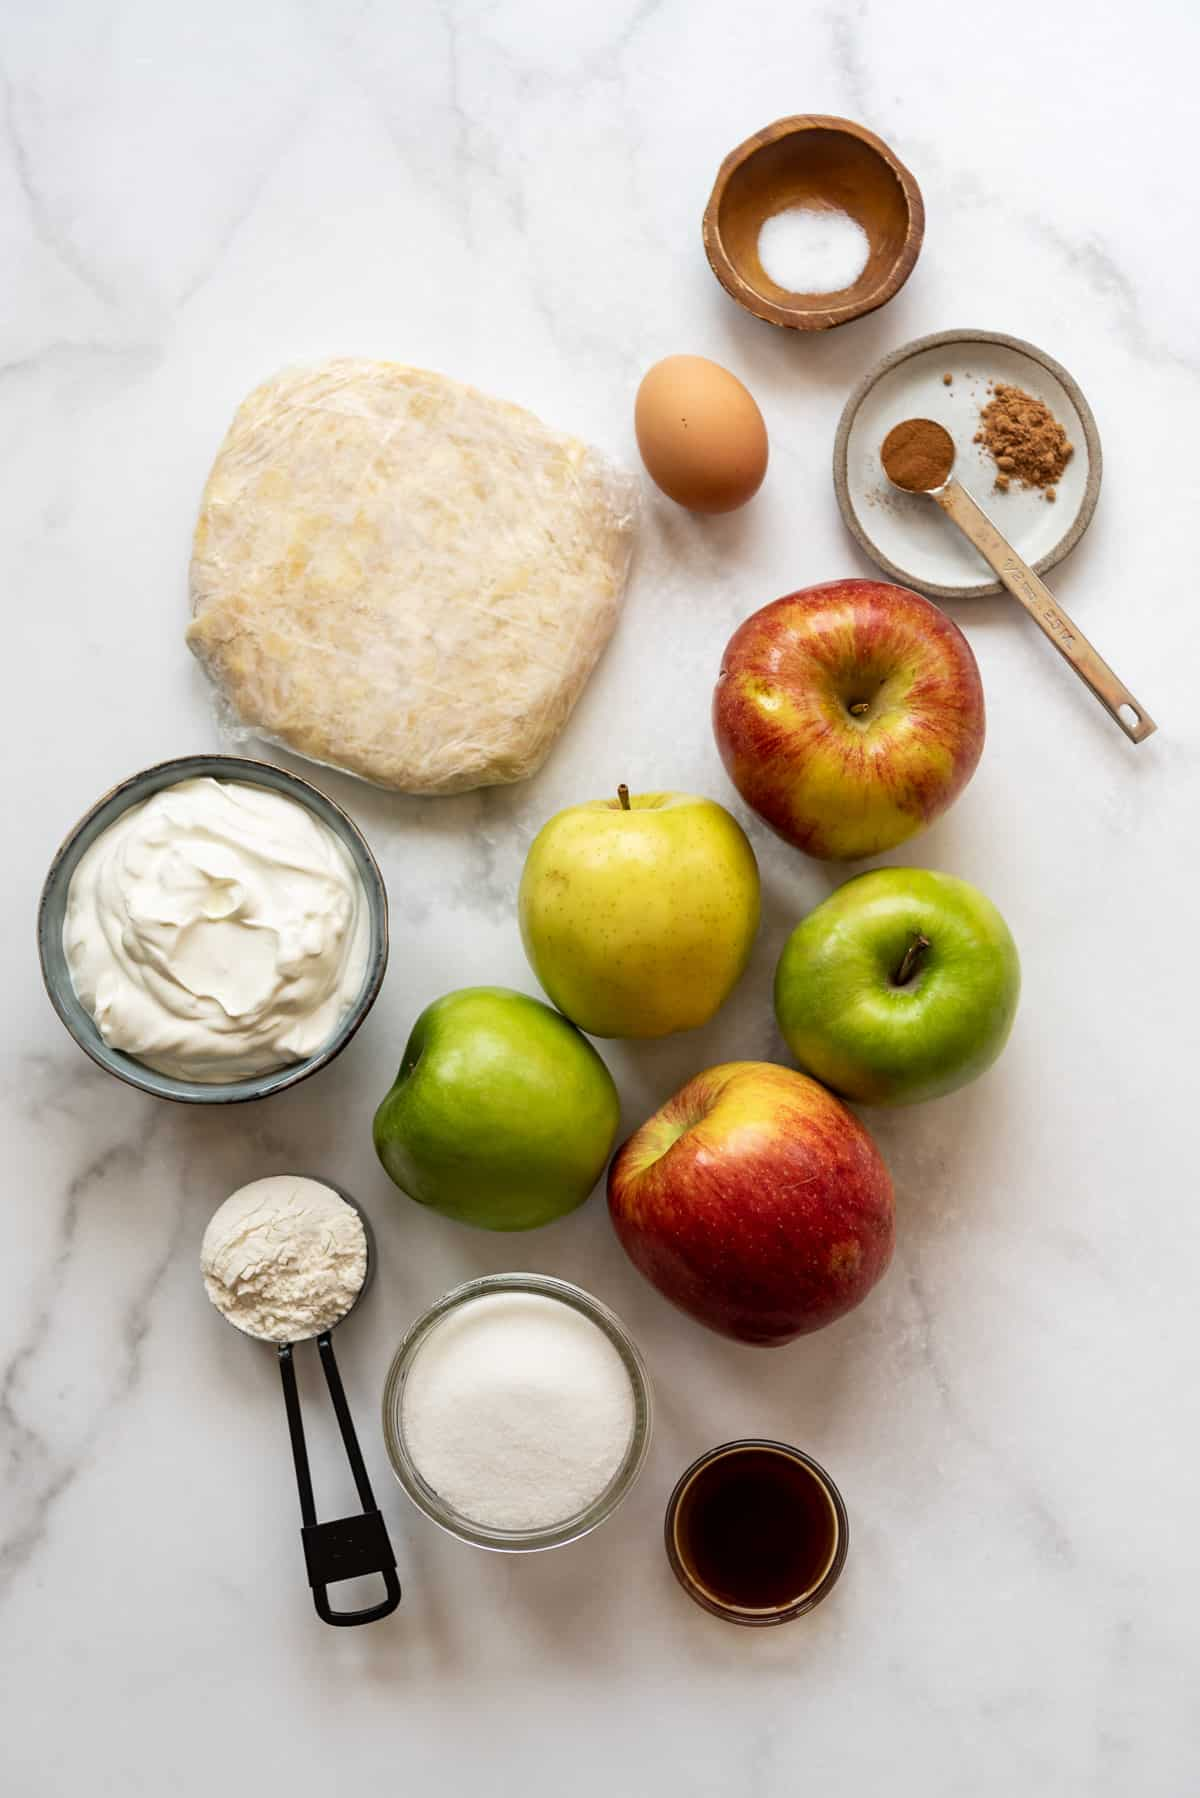 Sour cream apple pie filling ingredients on a white surface.